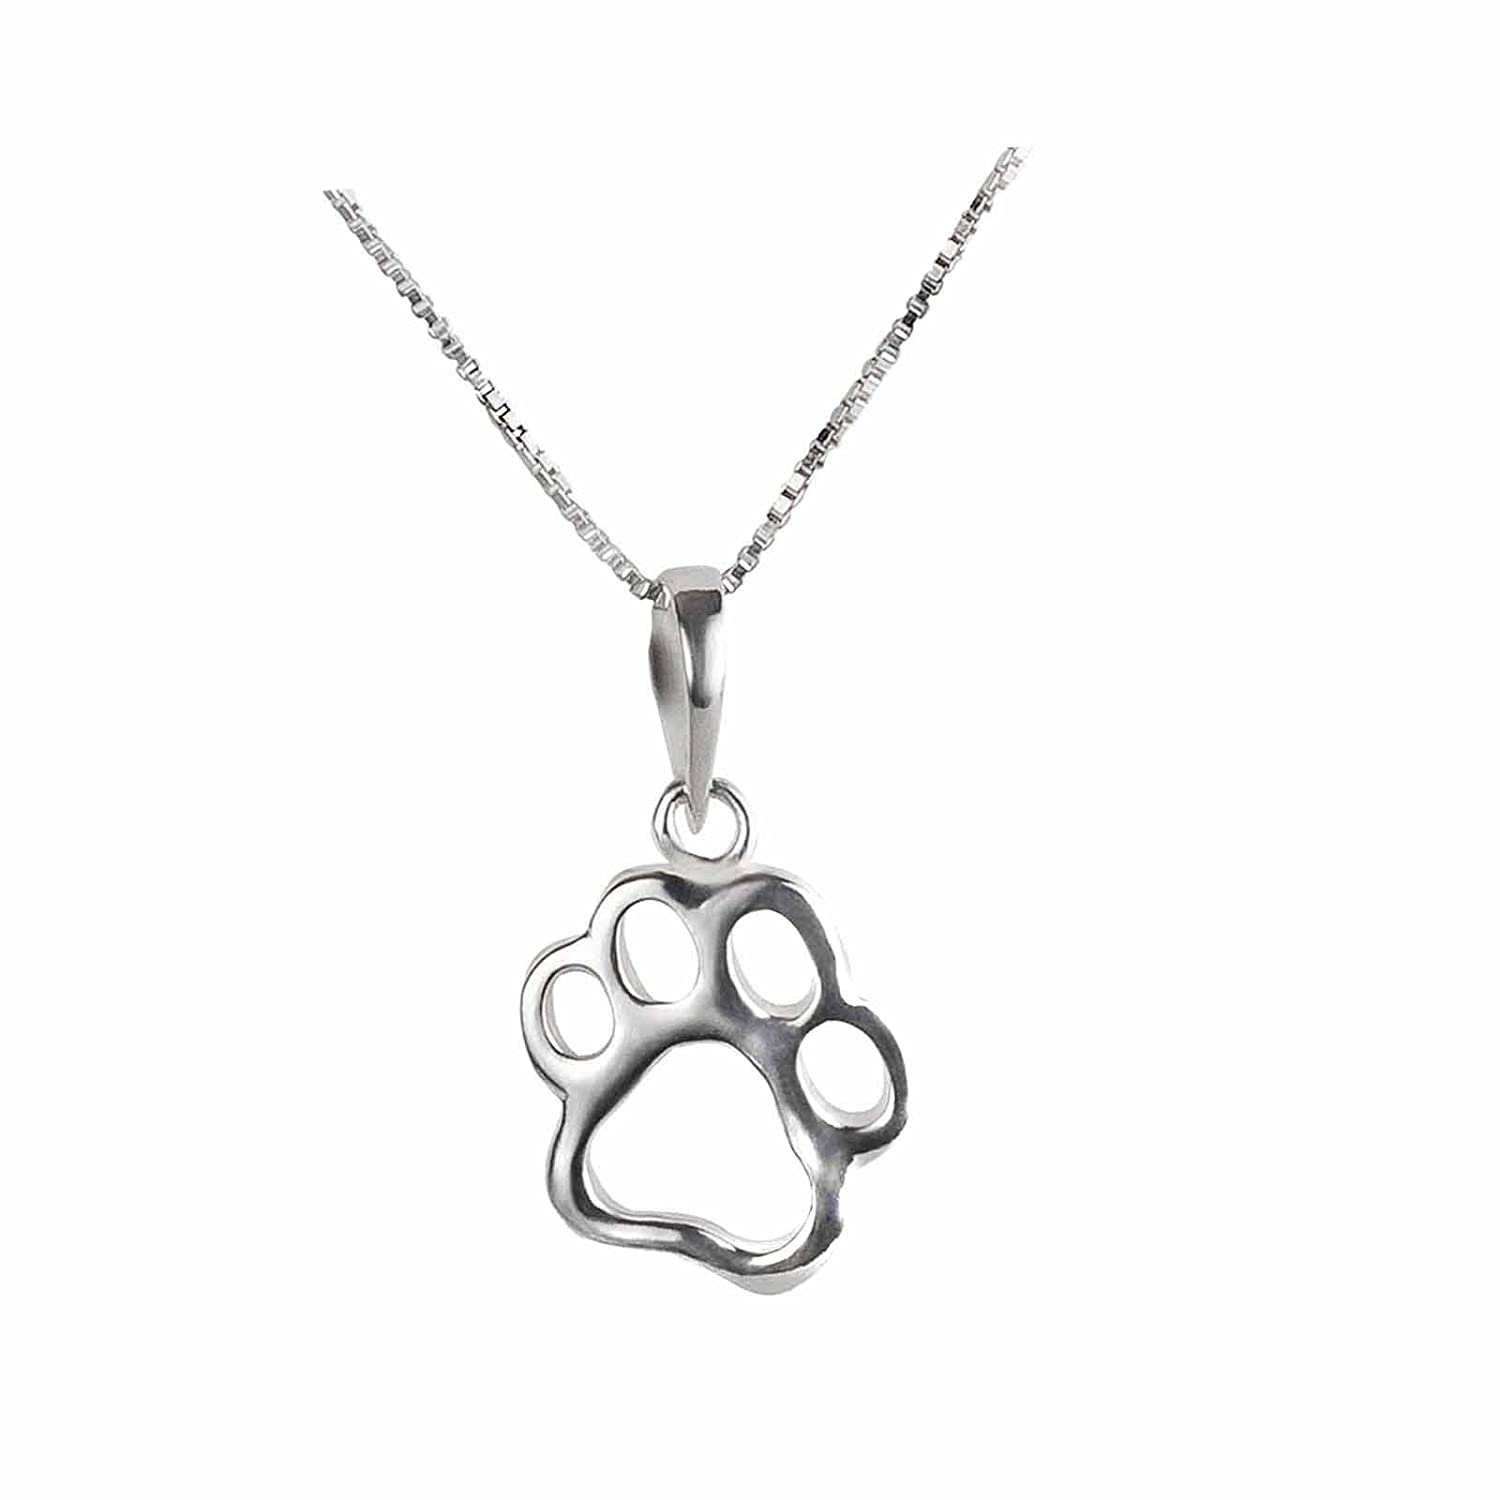 SL-Silver 925Sterling Silver Dog Paw Pendant Necklace Set in Gift Case ansilber122